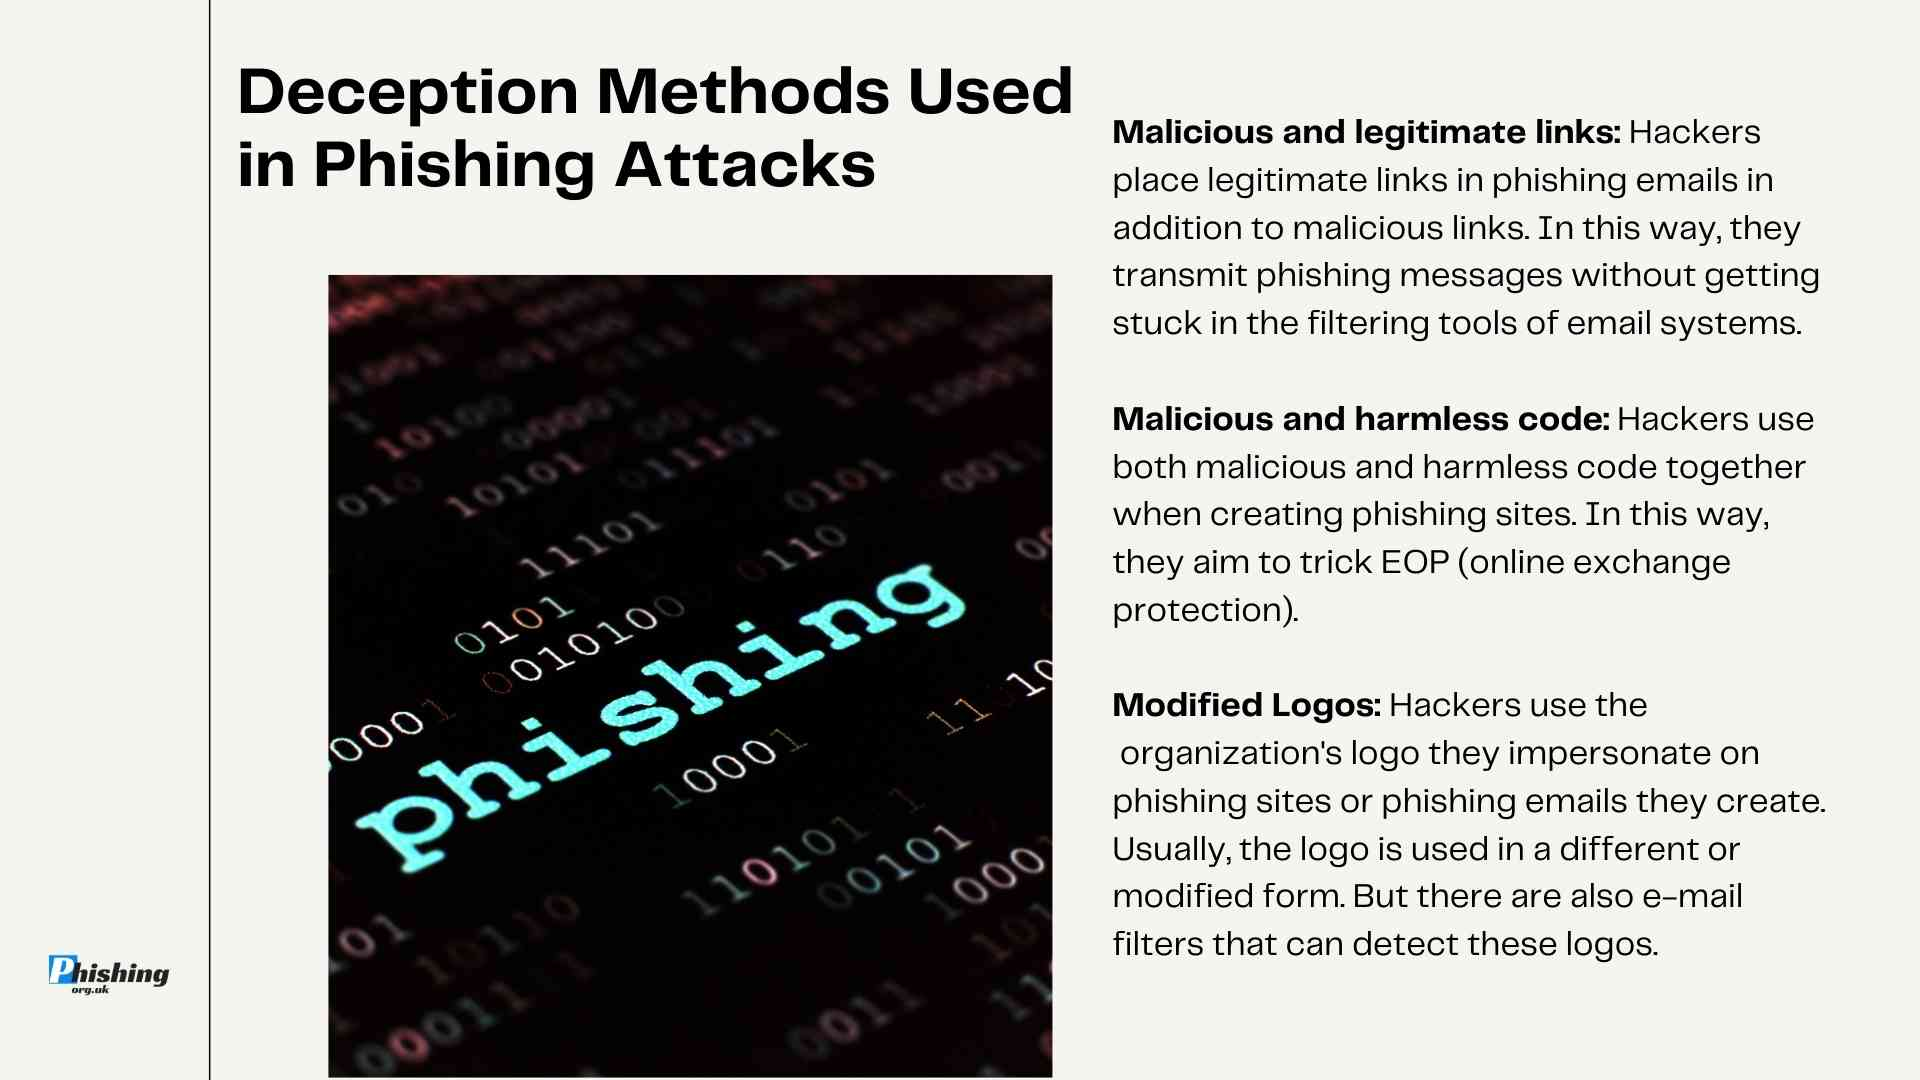 3 Most Frequently Used Phishing Methods